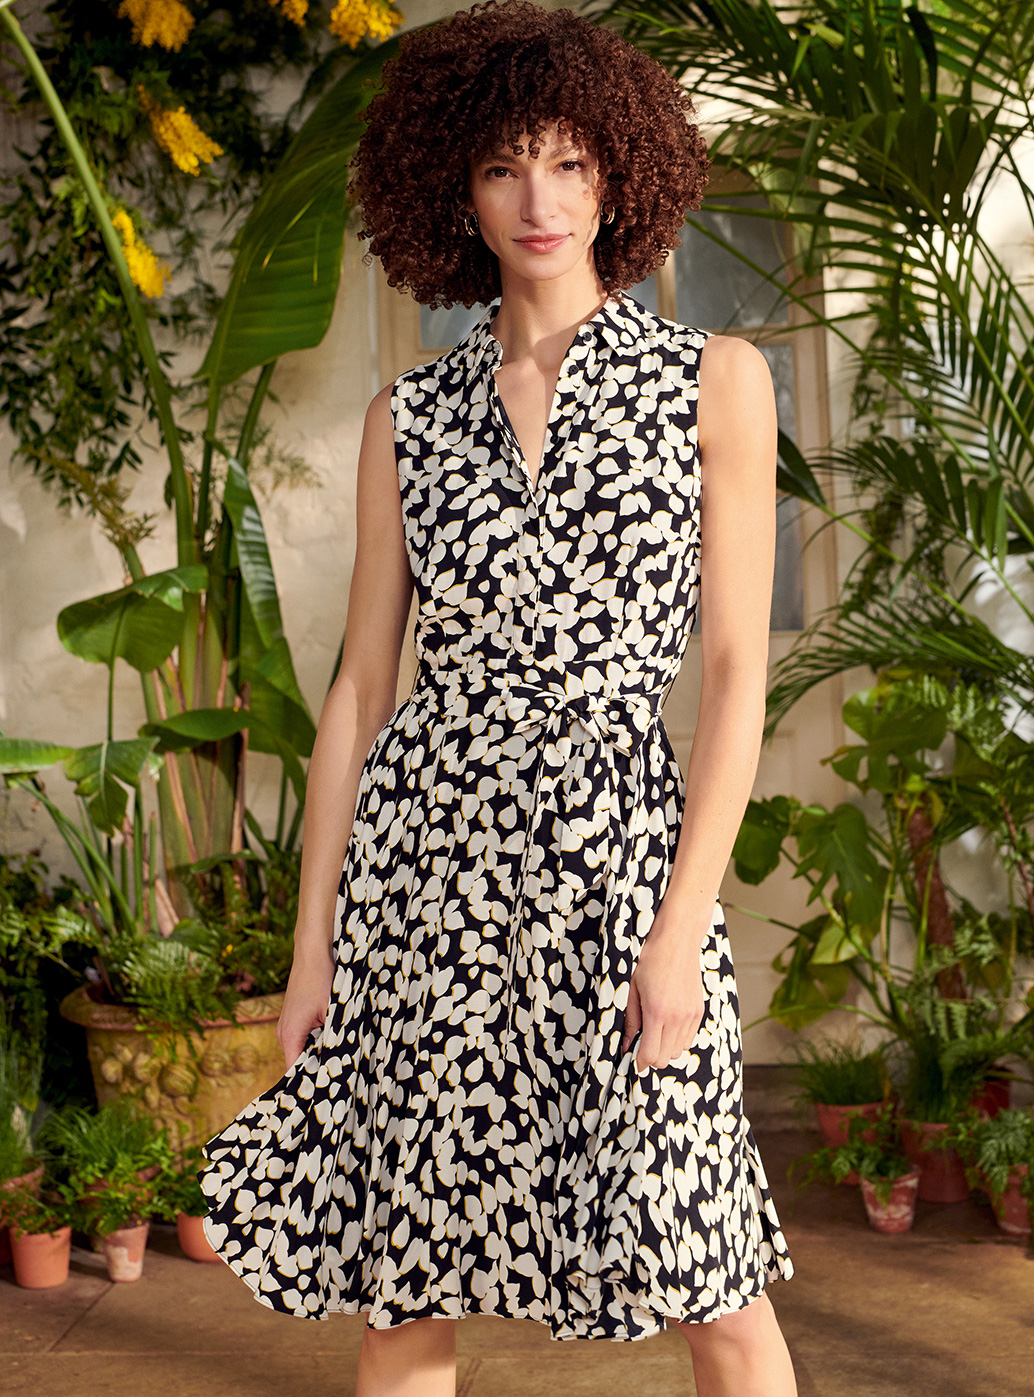 Model in a sleeveless shirt dress stands in a conservatory surrounded by greenery.